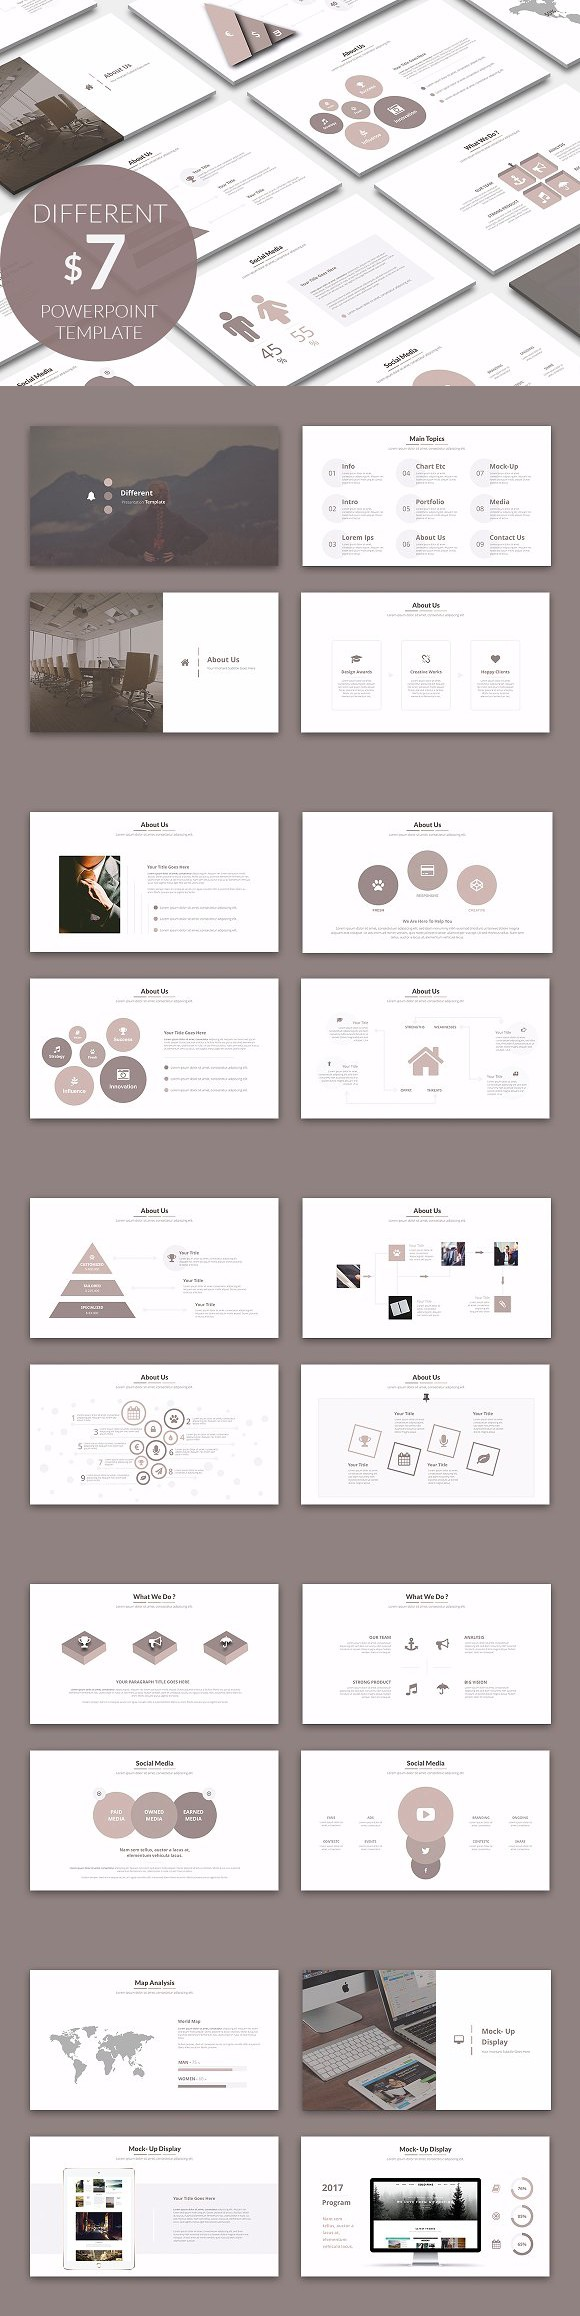 Different Powerpoint Template Keynote Templates Keynote Templates